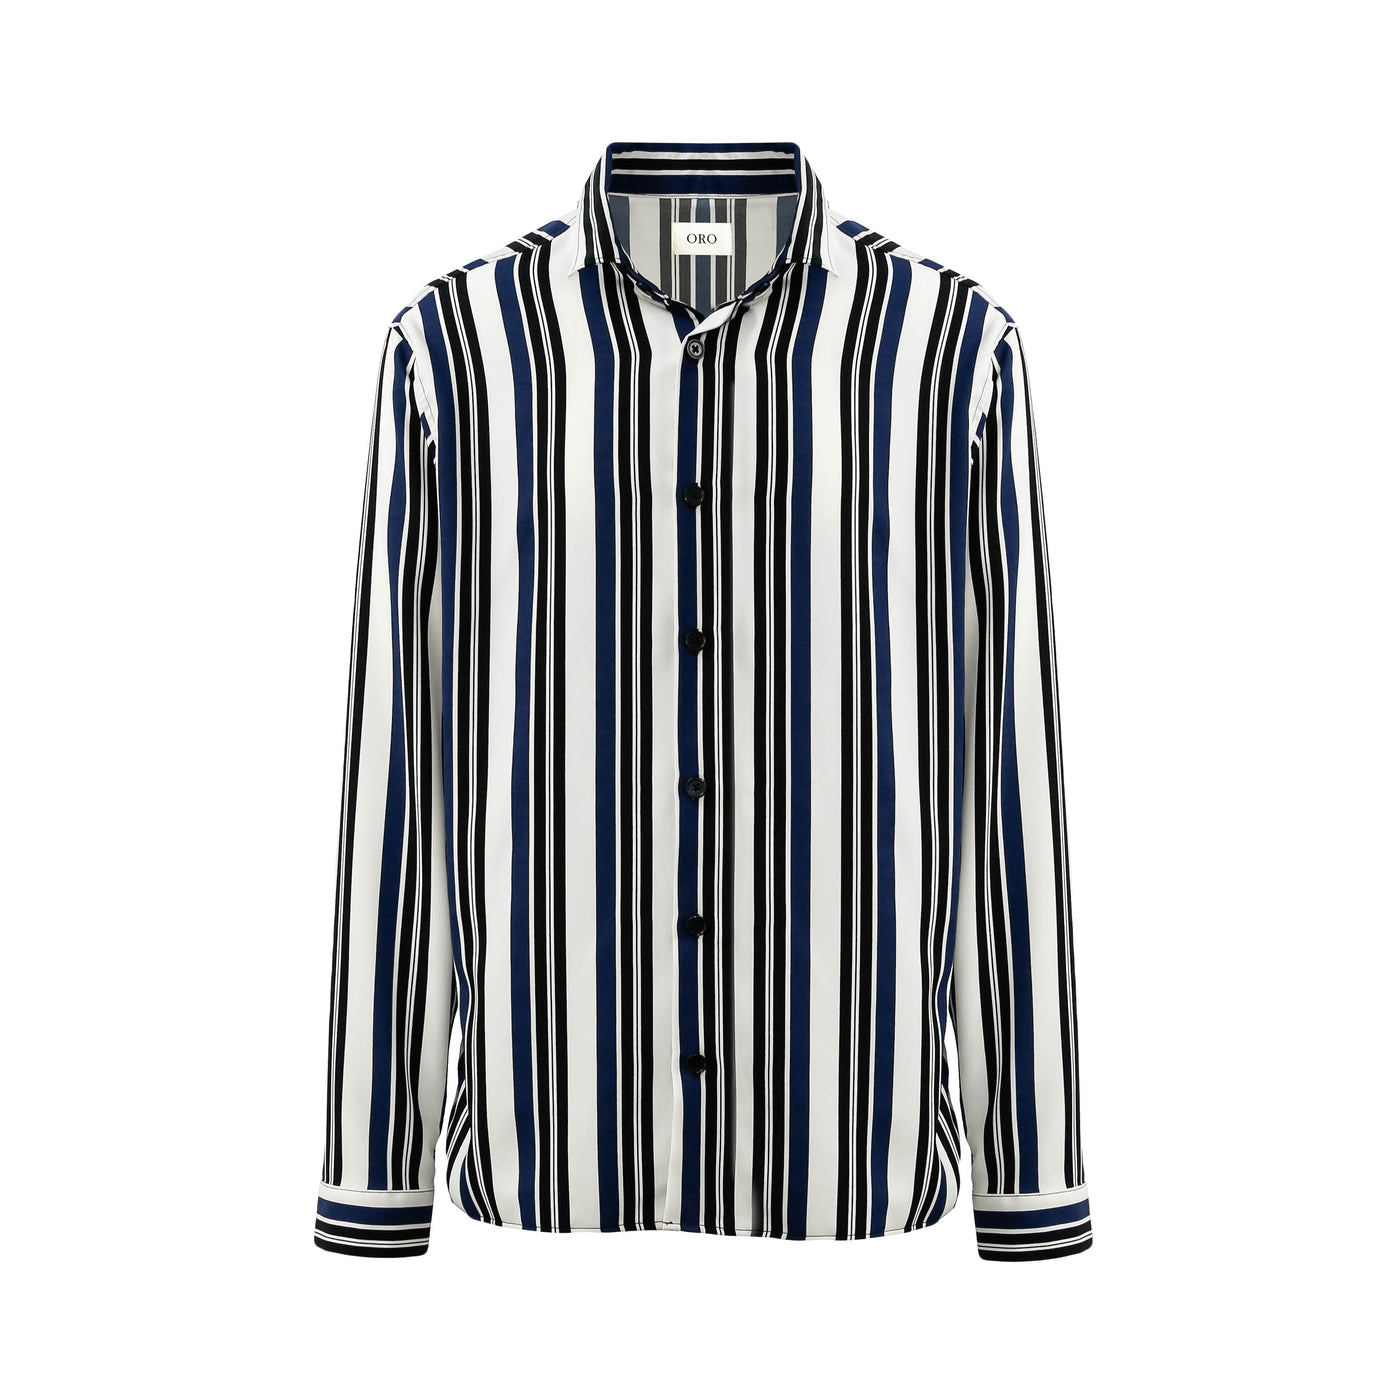 THE STANZA PINSTRIPE SHIRT